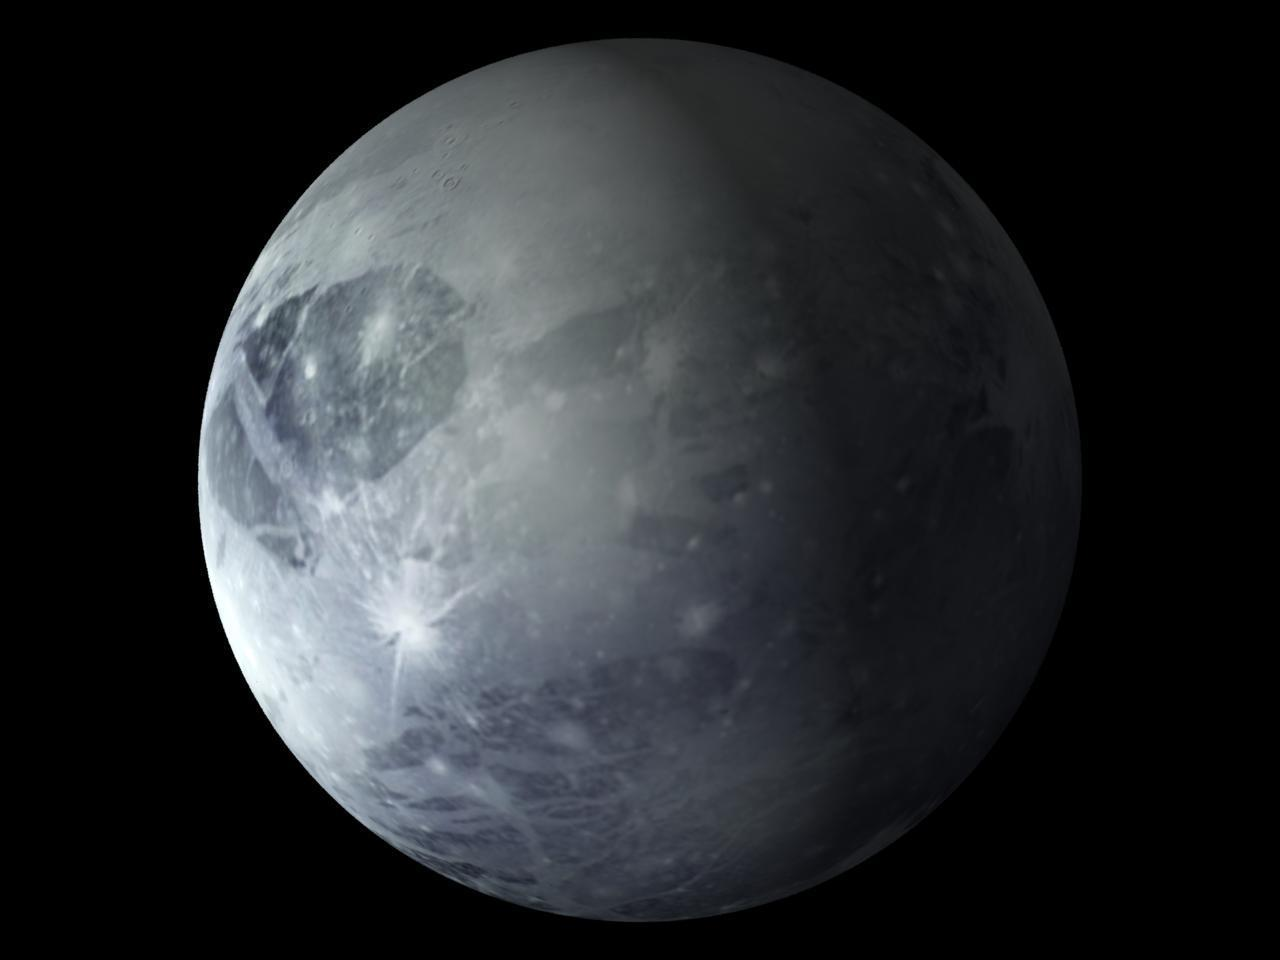 What does Pluto revolve around in the solar system (apart from the sun)?